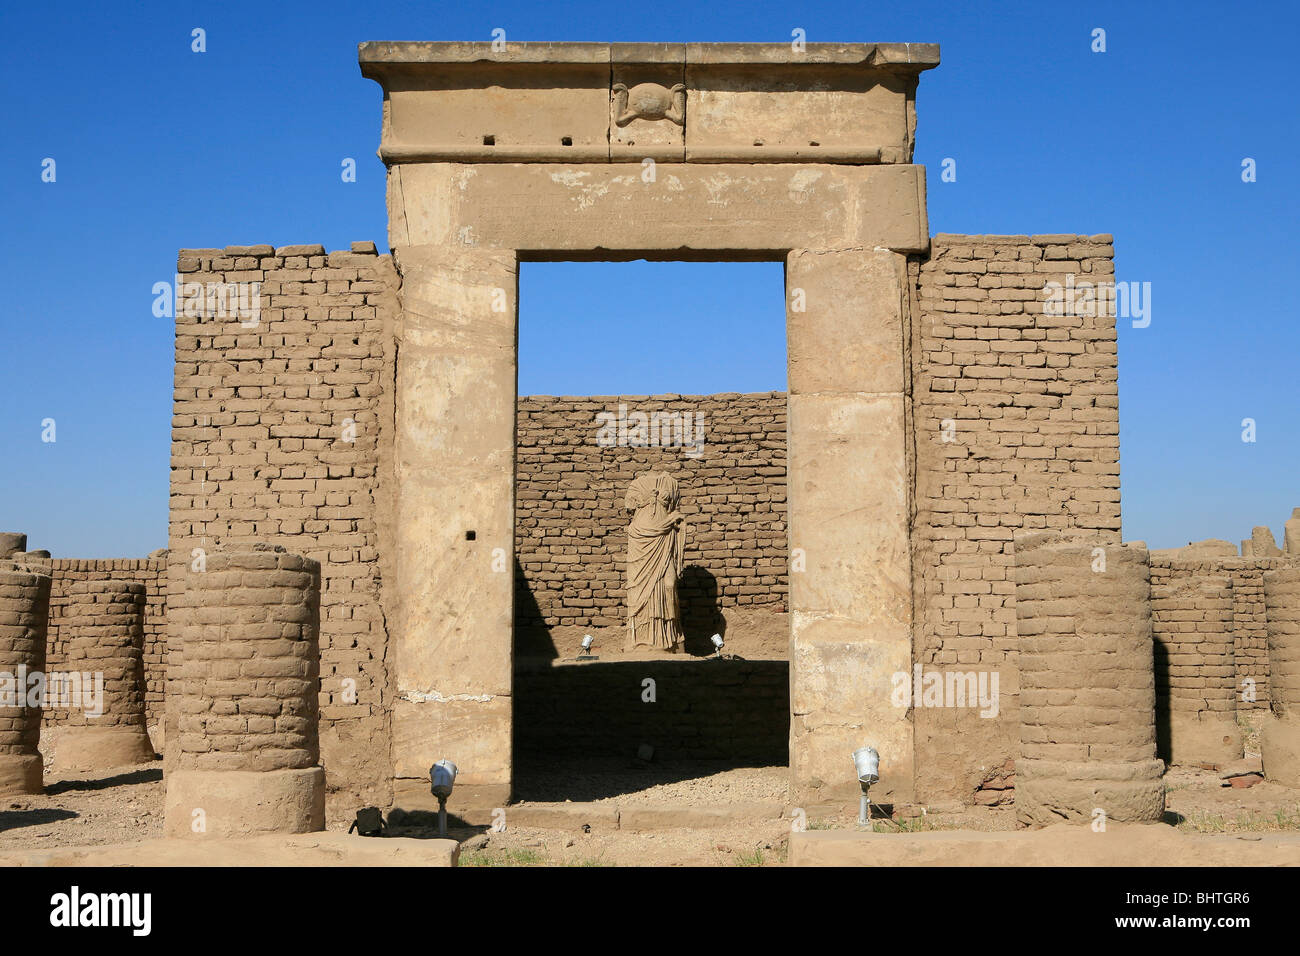 Chapel of Serapis at Luxor Temple in Luxor, Egypt - Stock Image